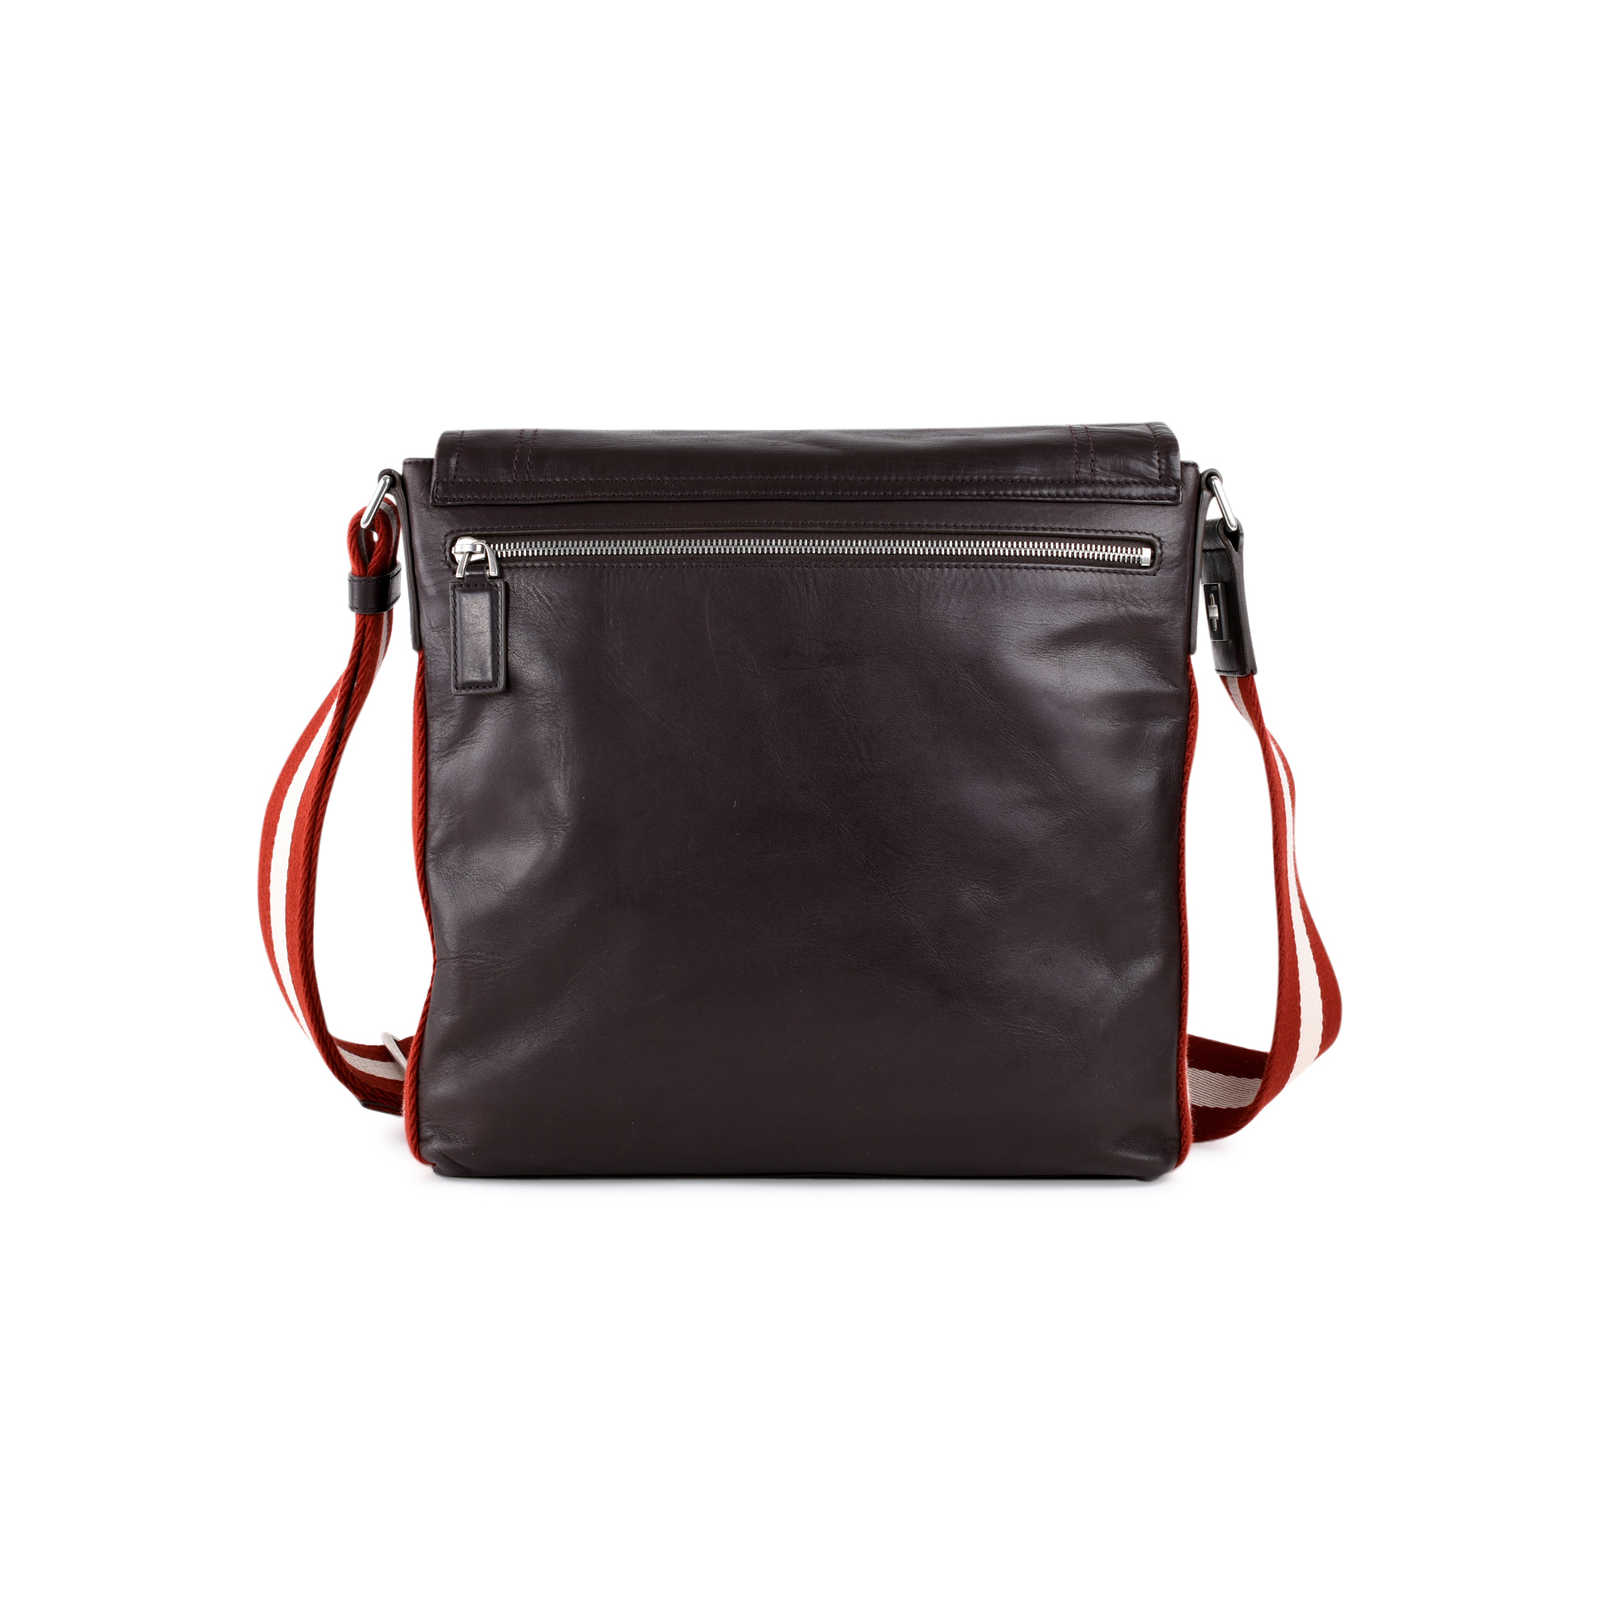 43b4b22acd ... Authentic Second Hand Bally Leather Messenger Bag (PSS-462-00021) -  Thumbnail ...